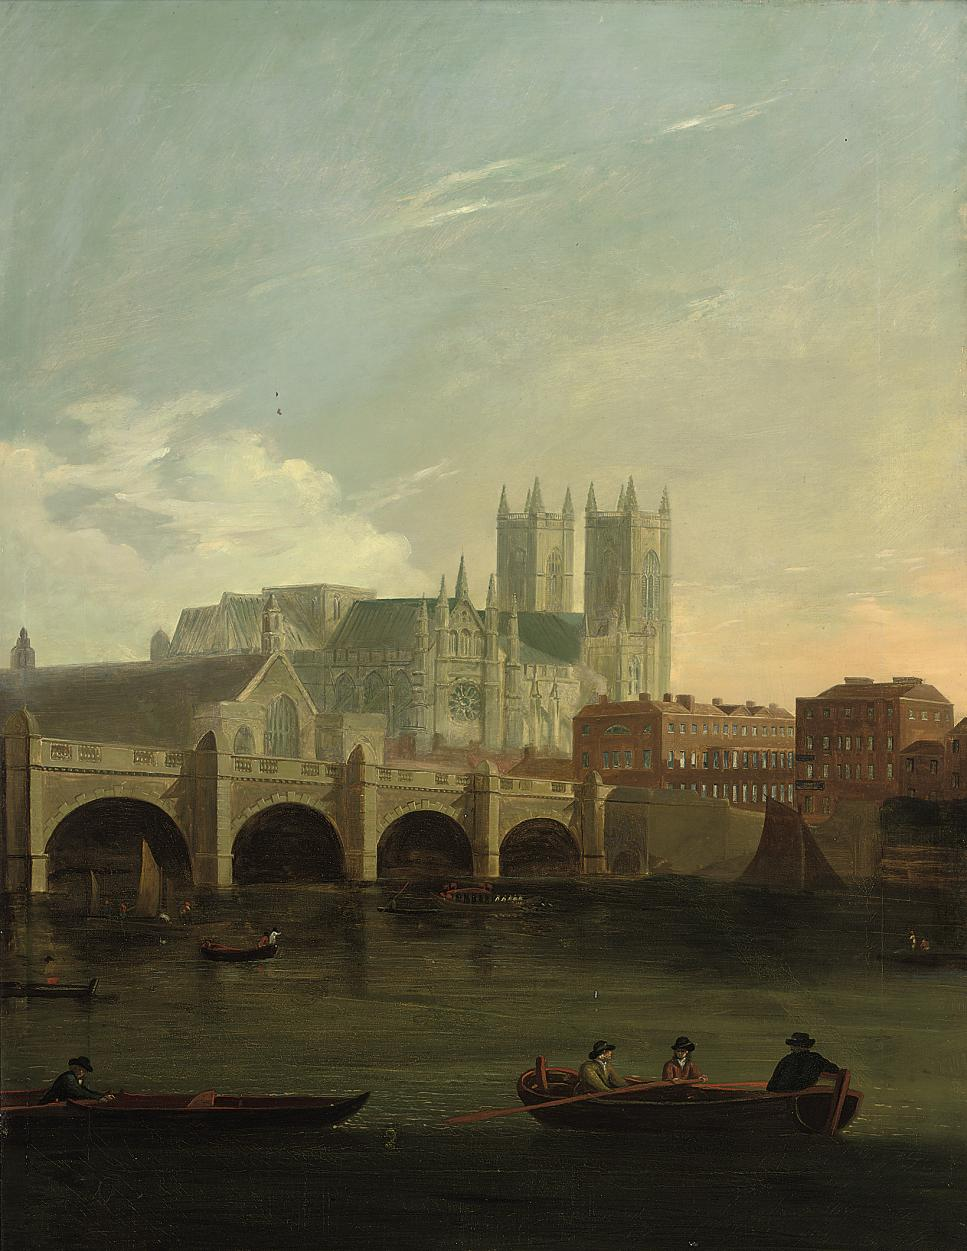 A view of Westminster Bridge with figures and boats on the Thames